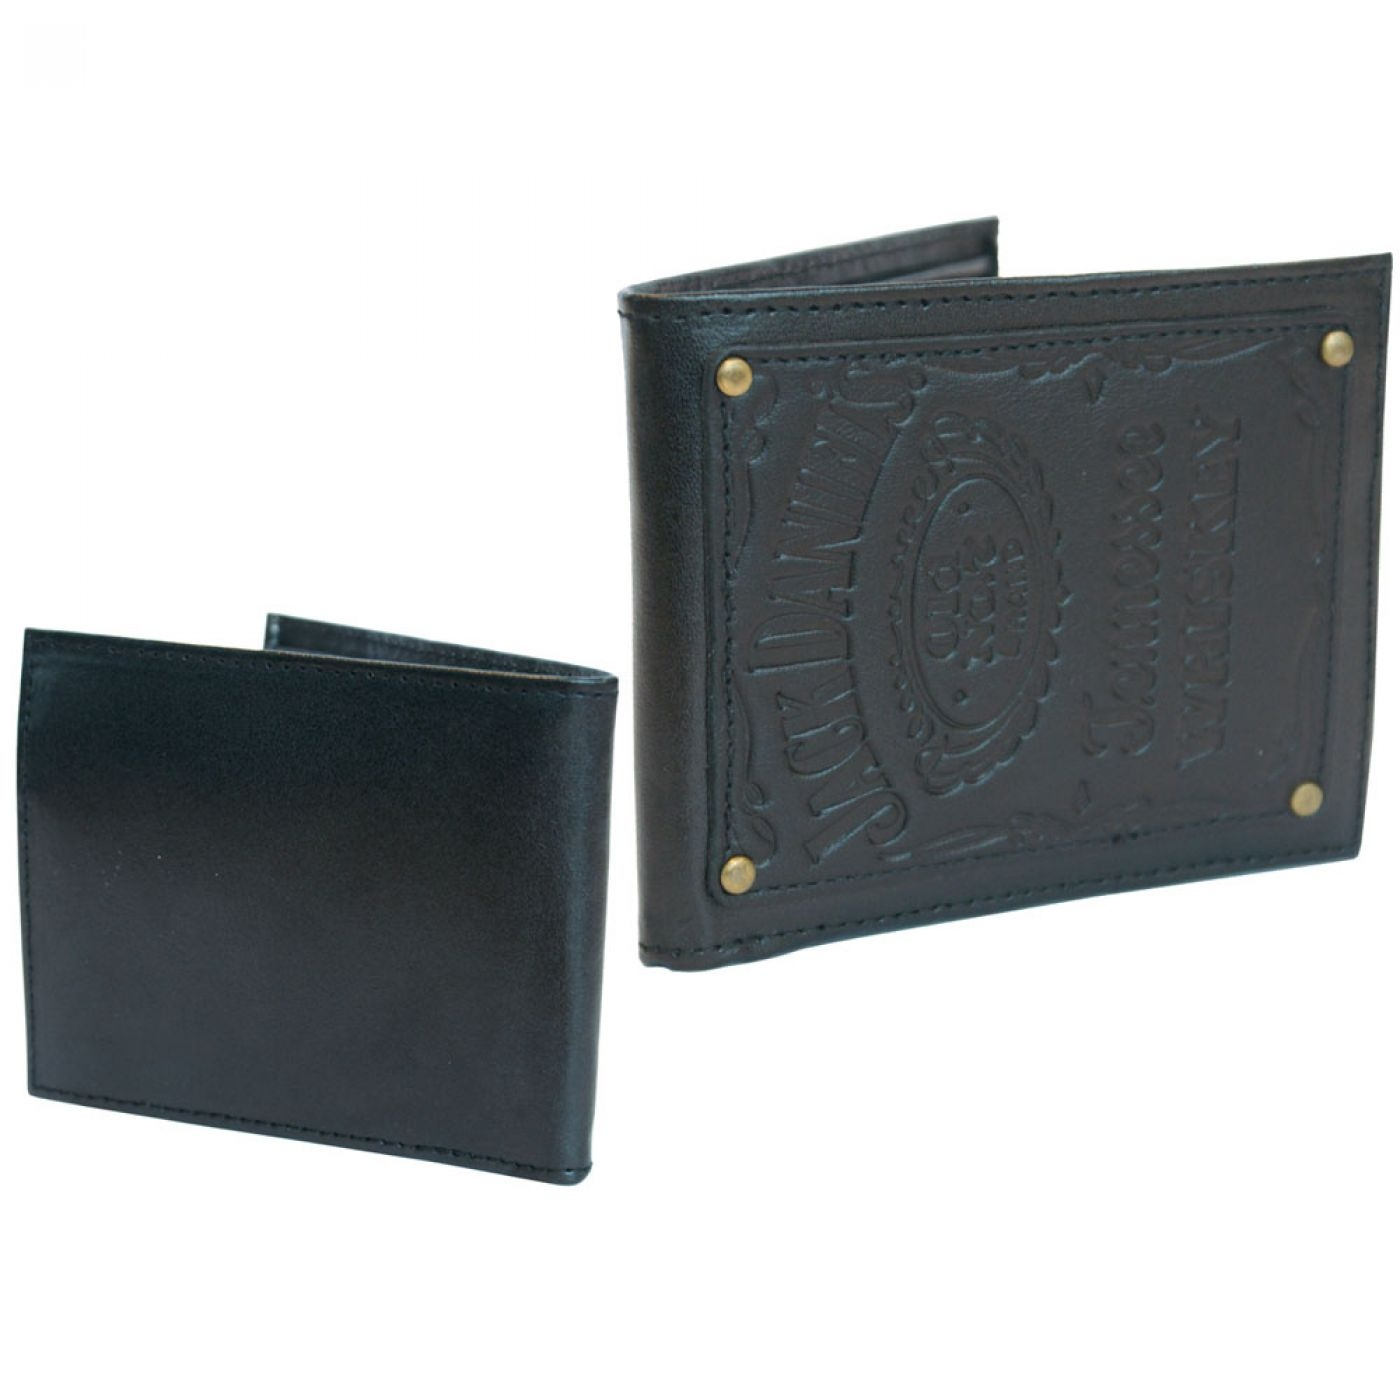 Jack Daniel's wallet with engraved patch - JD Old No.7 Brand leather wallet